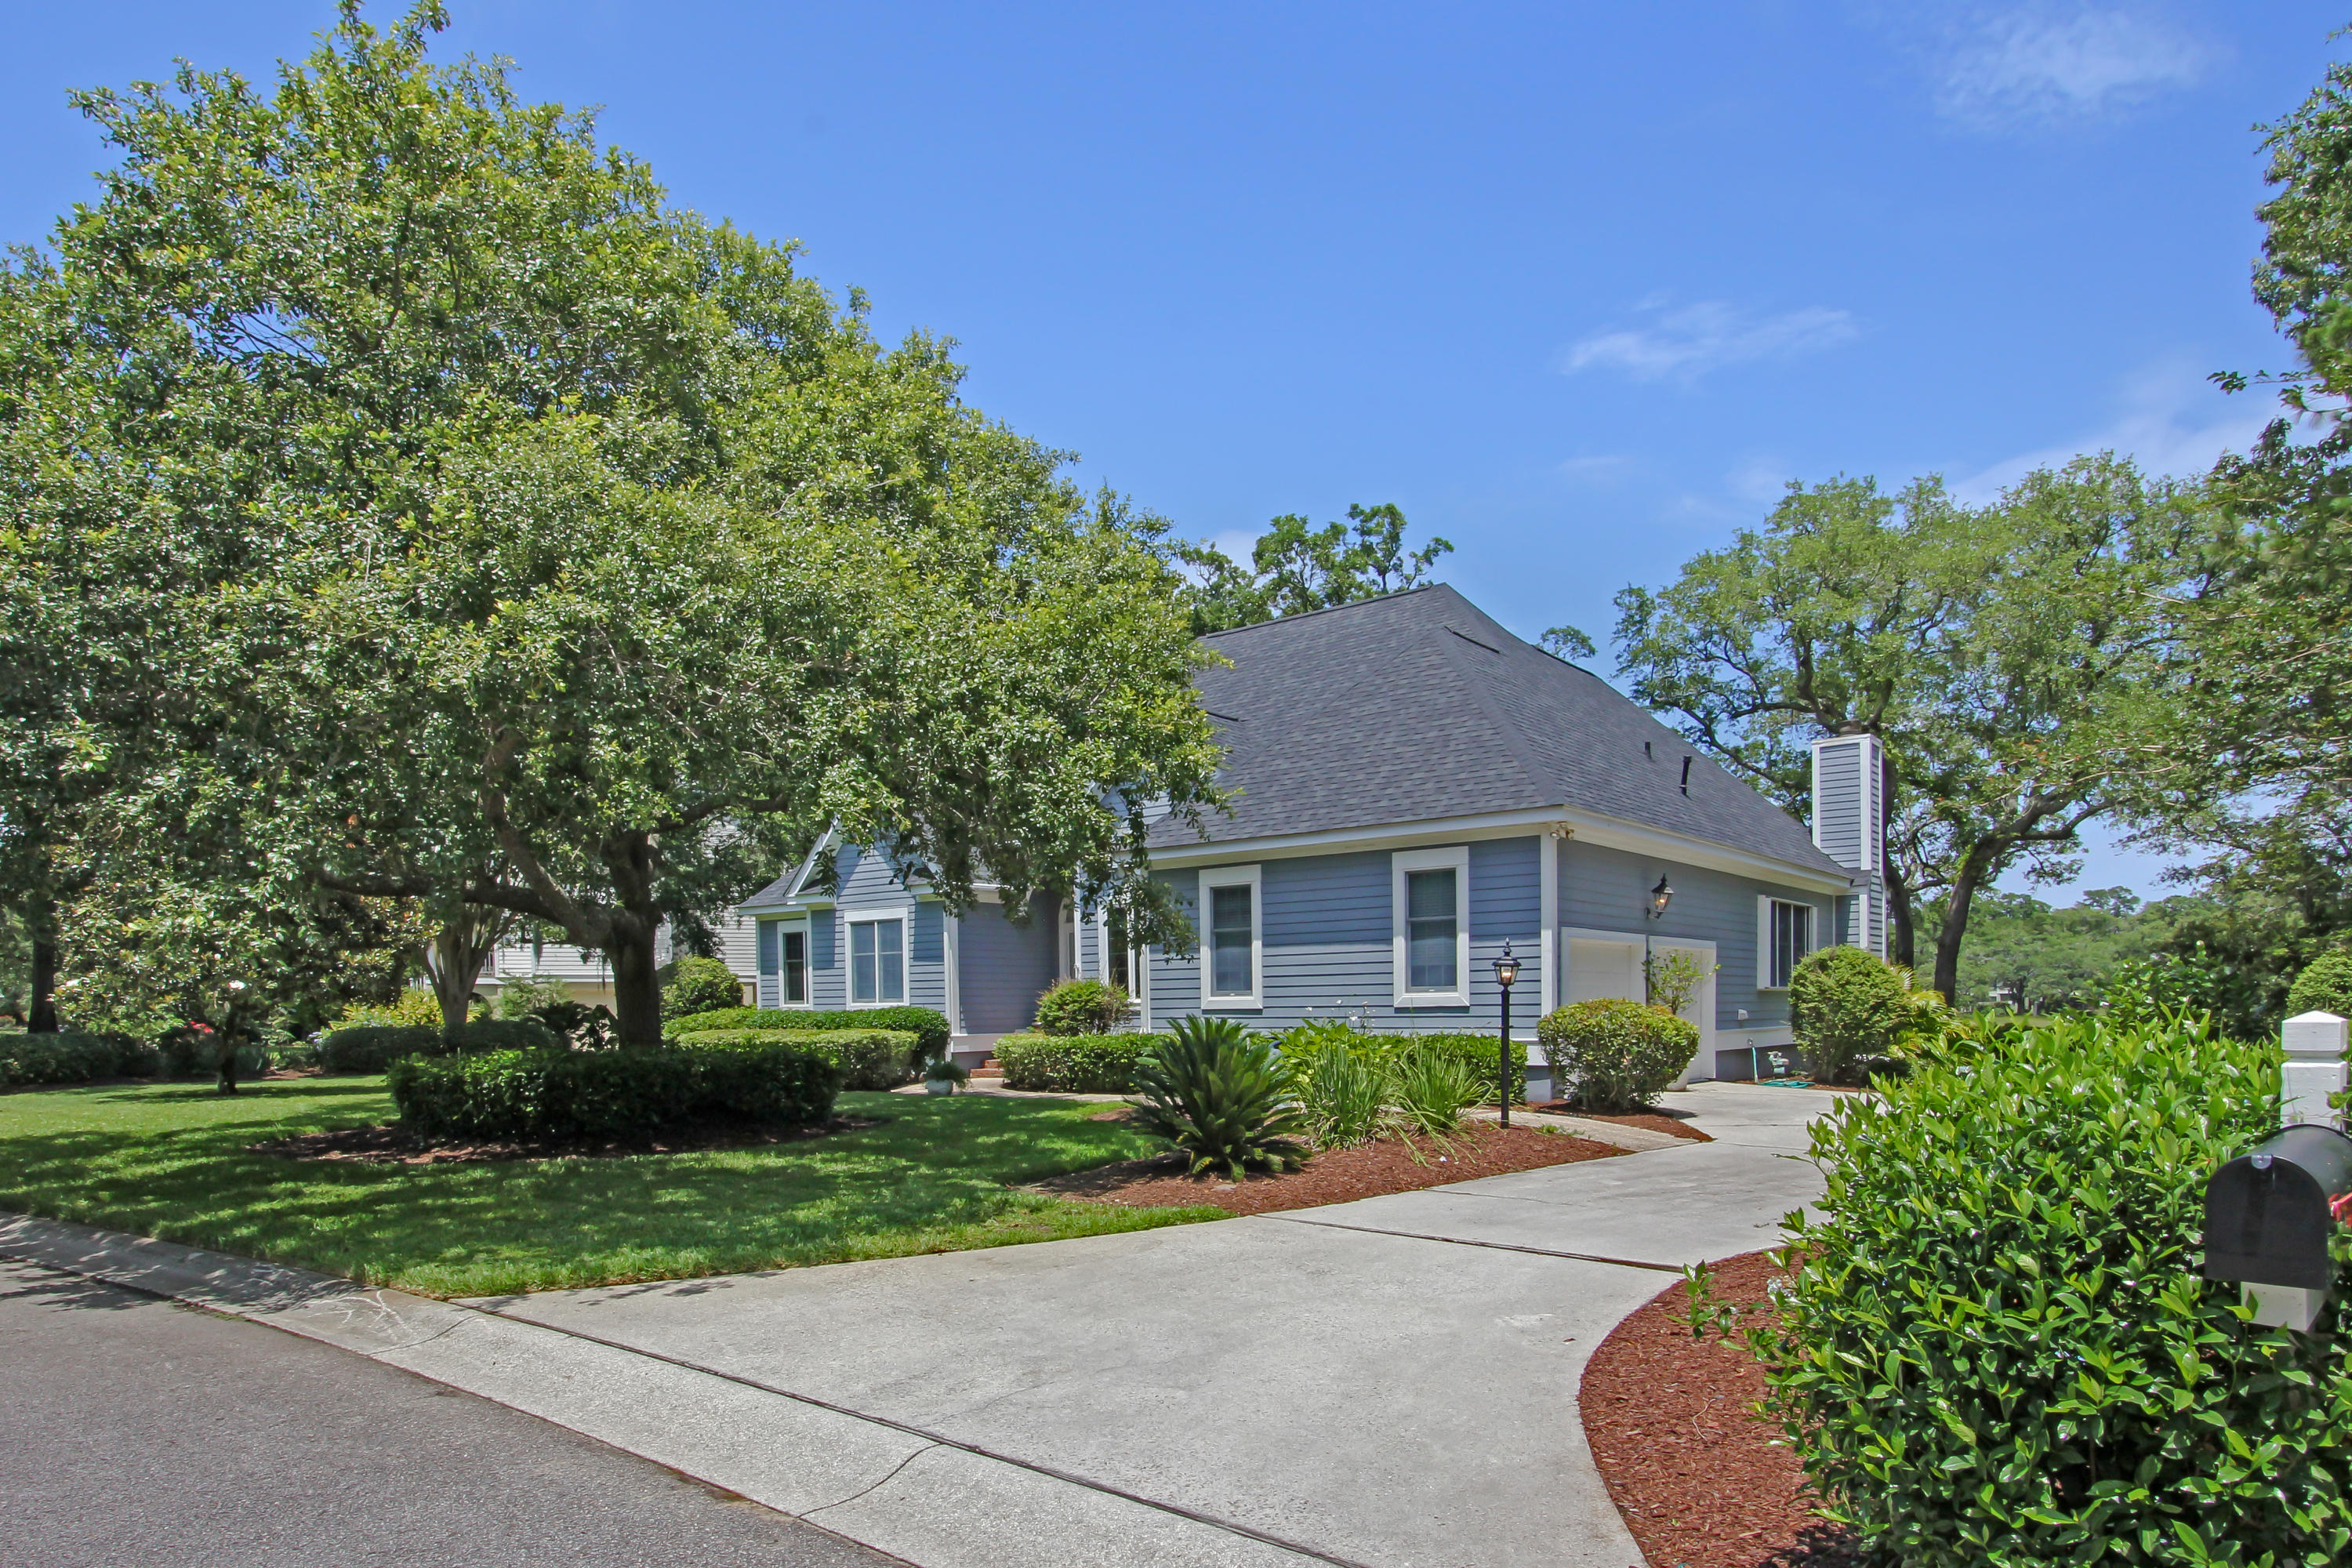 Stiles Point Plantation Homes For Sale - 837 Whispering Marsh, Charleston, SC - 30